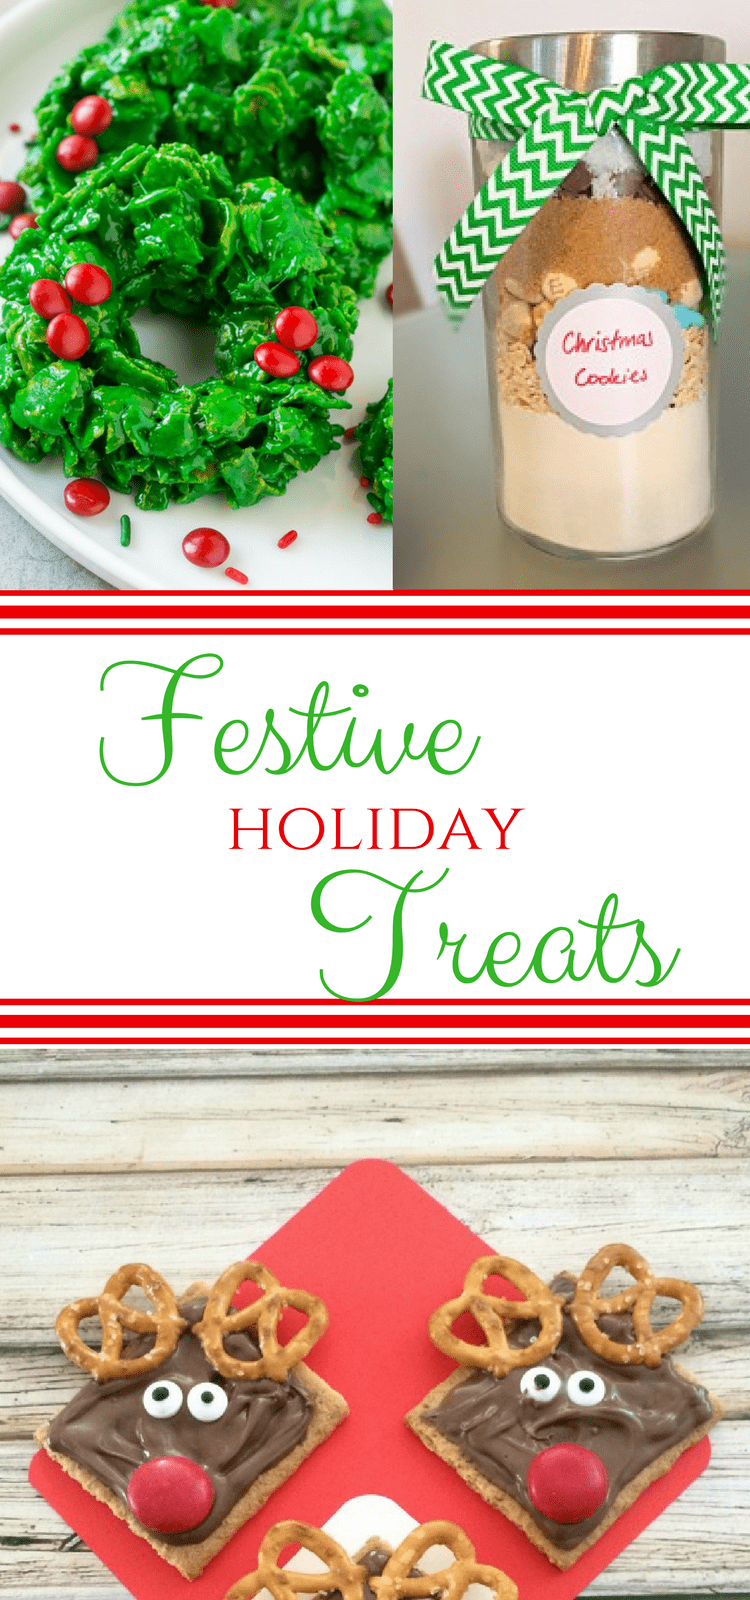 Looking for the perfect Holiday Treats ? Look no further than this fun round-up of easy to make and super festive goodies that is sure to impress everyone! #CookieSwap #ChristmasCookies #HolidayTreats